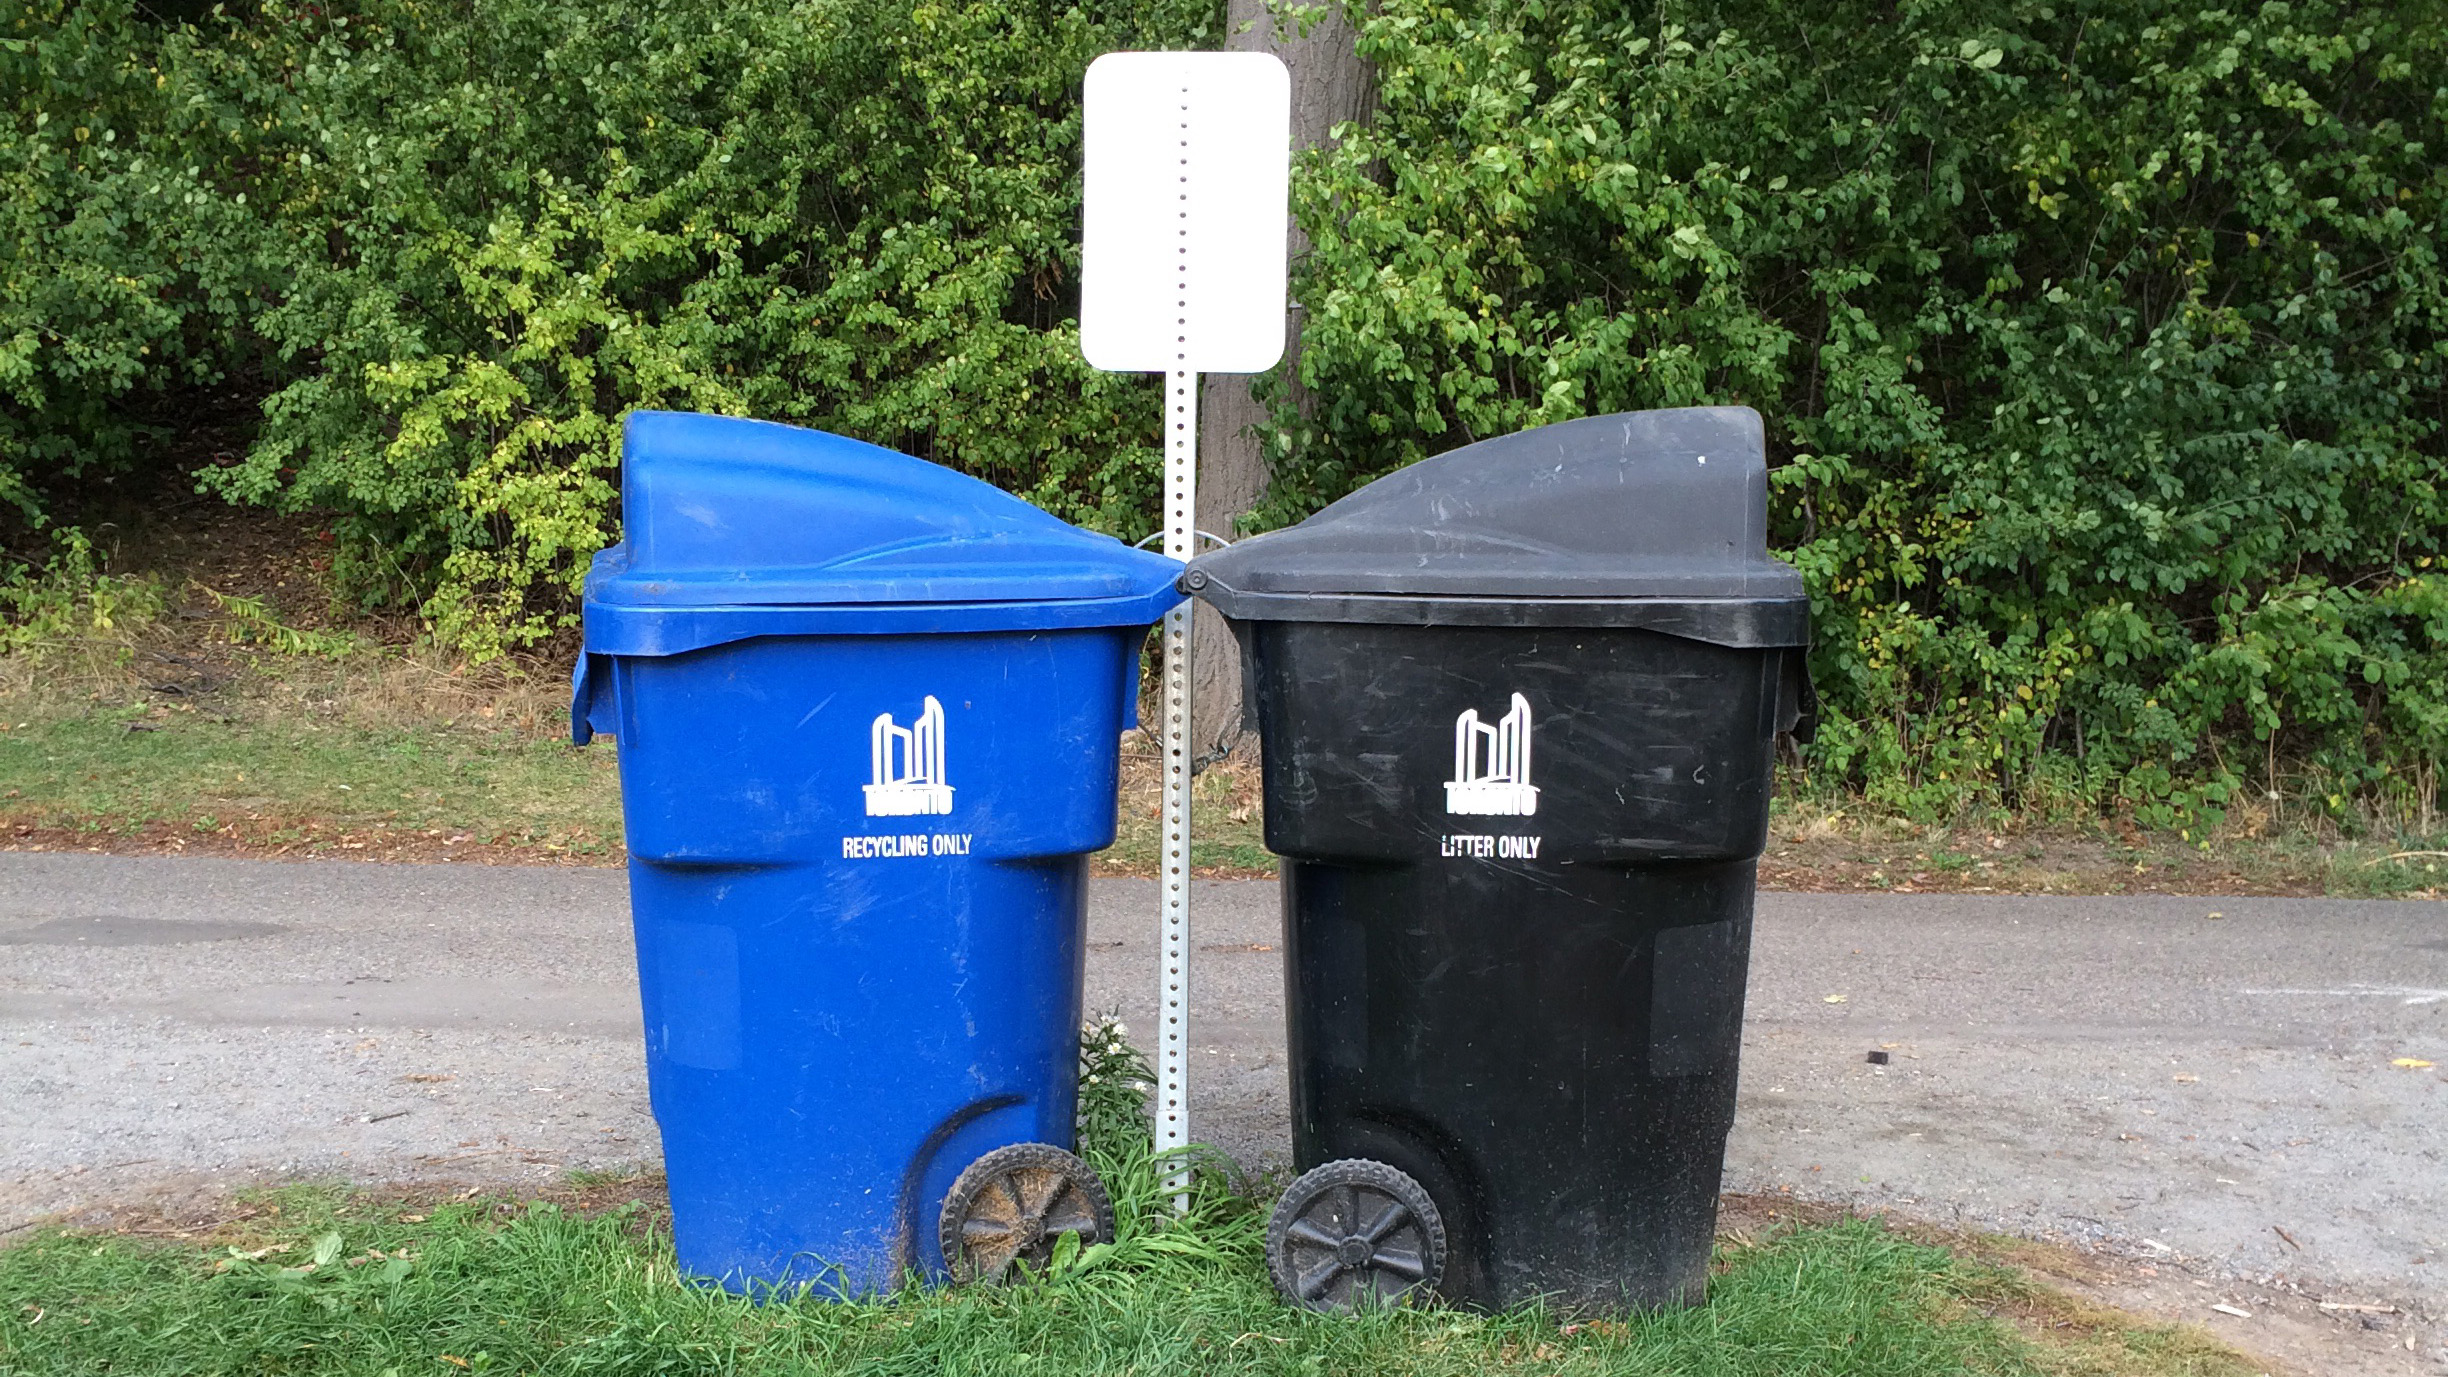 A blue bin and a black bin are seen in High Park on Oct. 14, 2015. Image courtesy CityNews viewer Astrida Liepins.